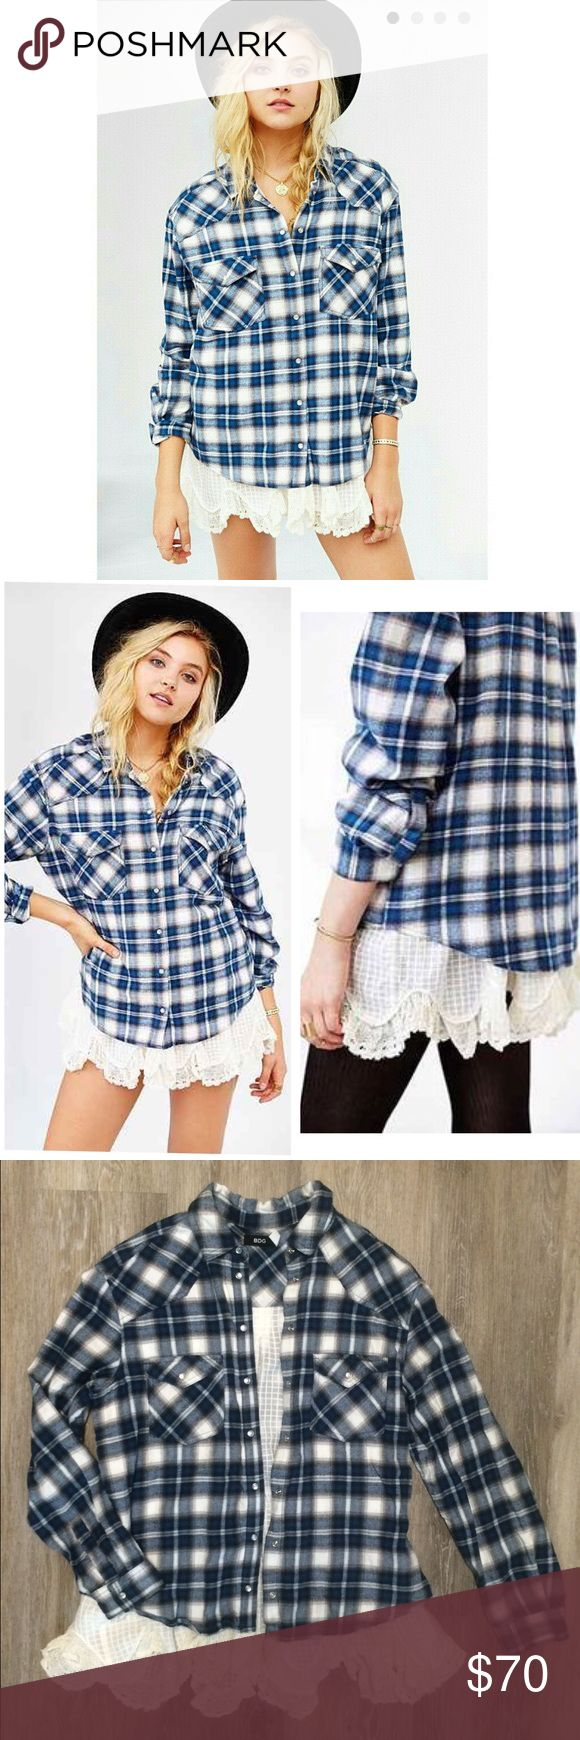 Urban Outfitters BDG Lace Petticoat Flannel Blue and white flannel with a crochet/lace attachment that shows at bottom. Goes great with leggings and boots. Size small, perfect condition. Not sure if I want to sell yet so open to offers. Urban Outfitters Tops Button Down Shirts